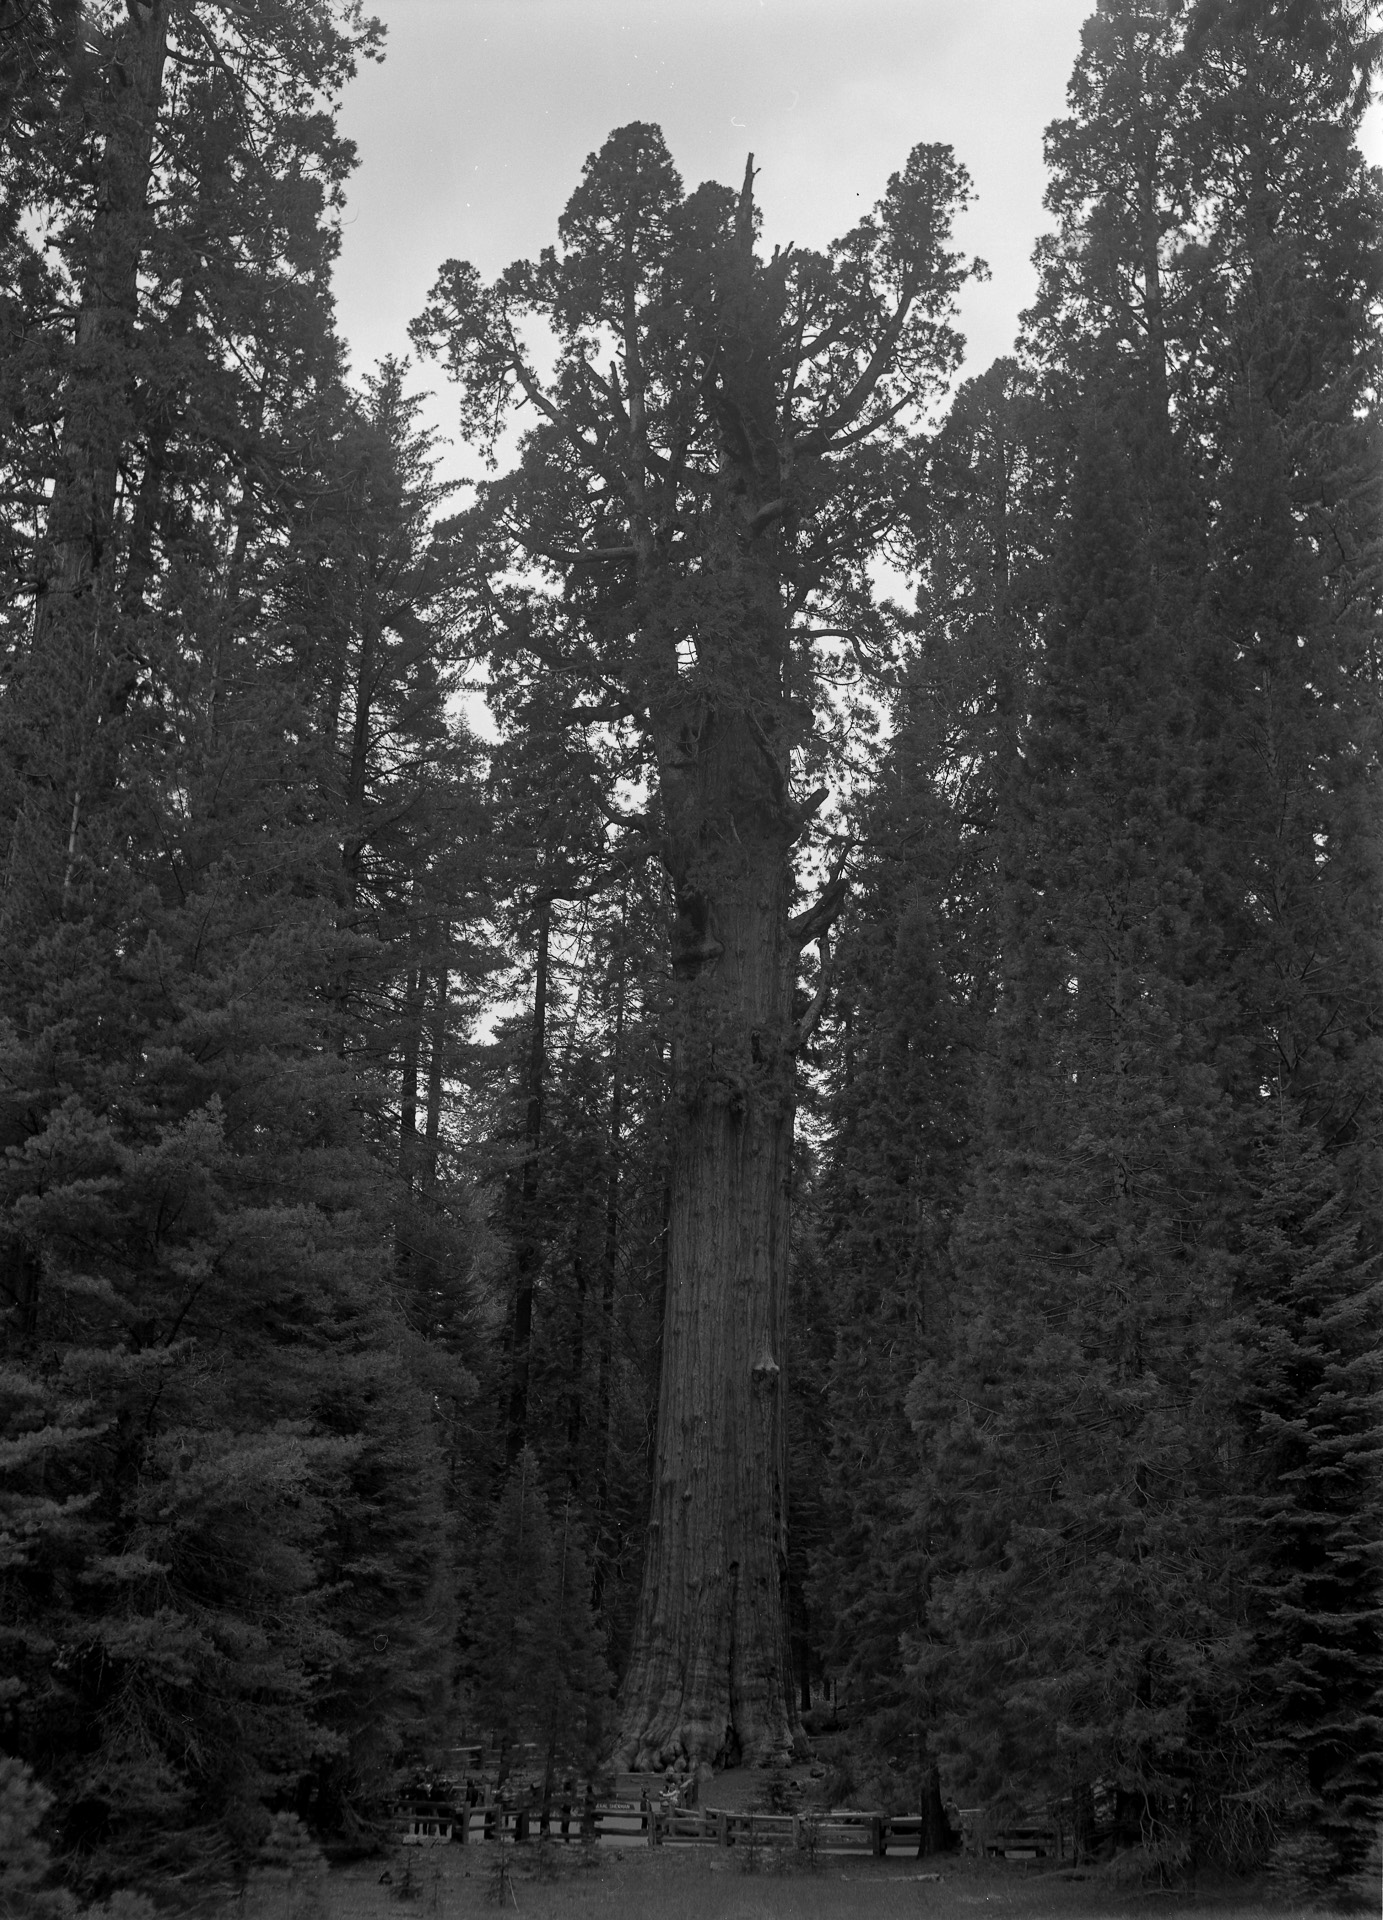 The General Sherman Tree, Sequoia National Park